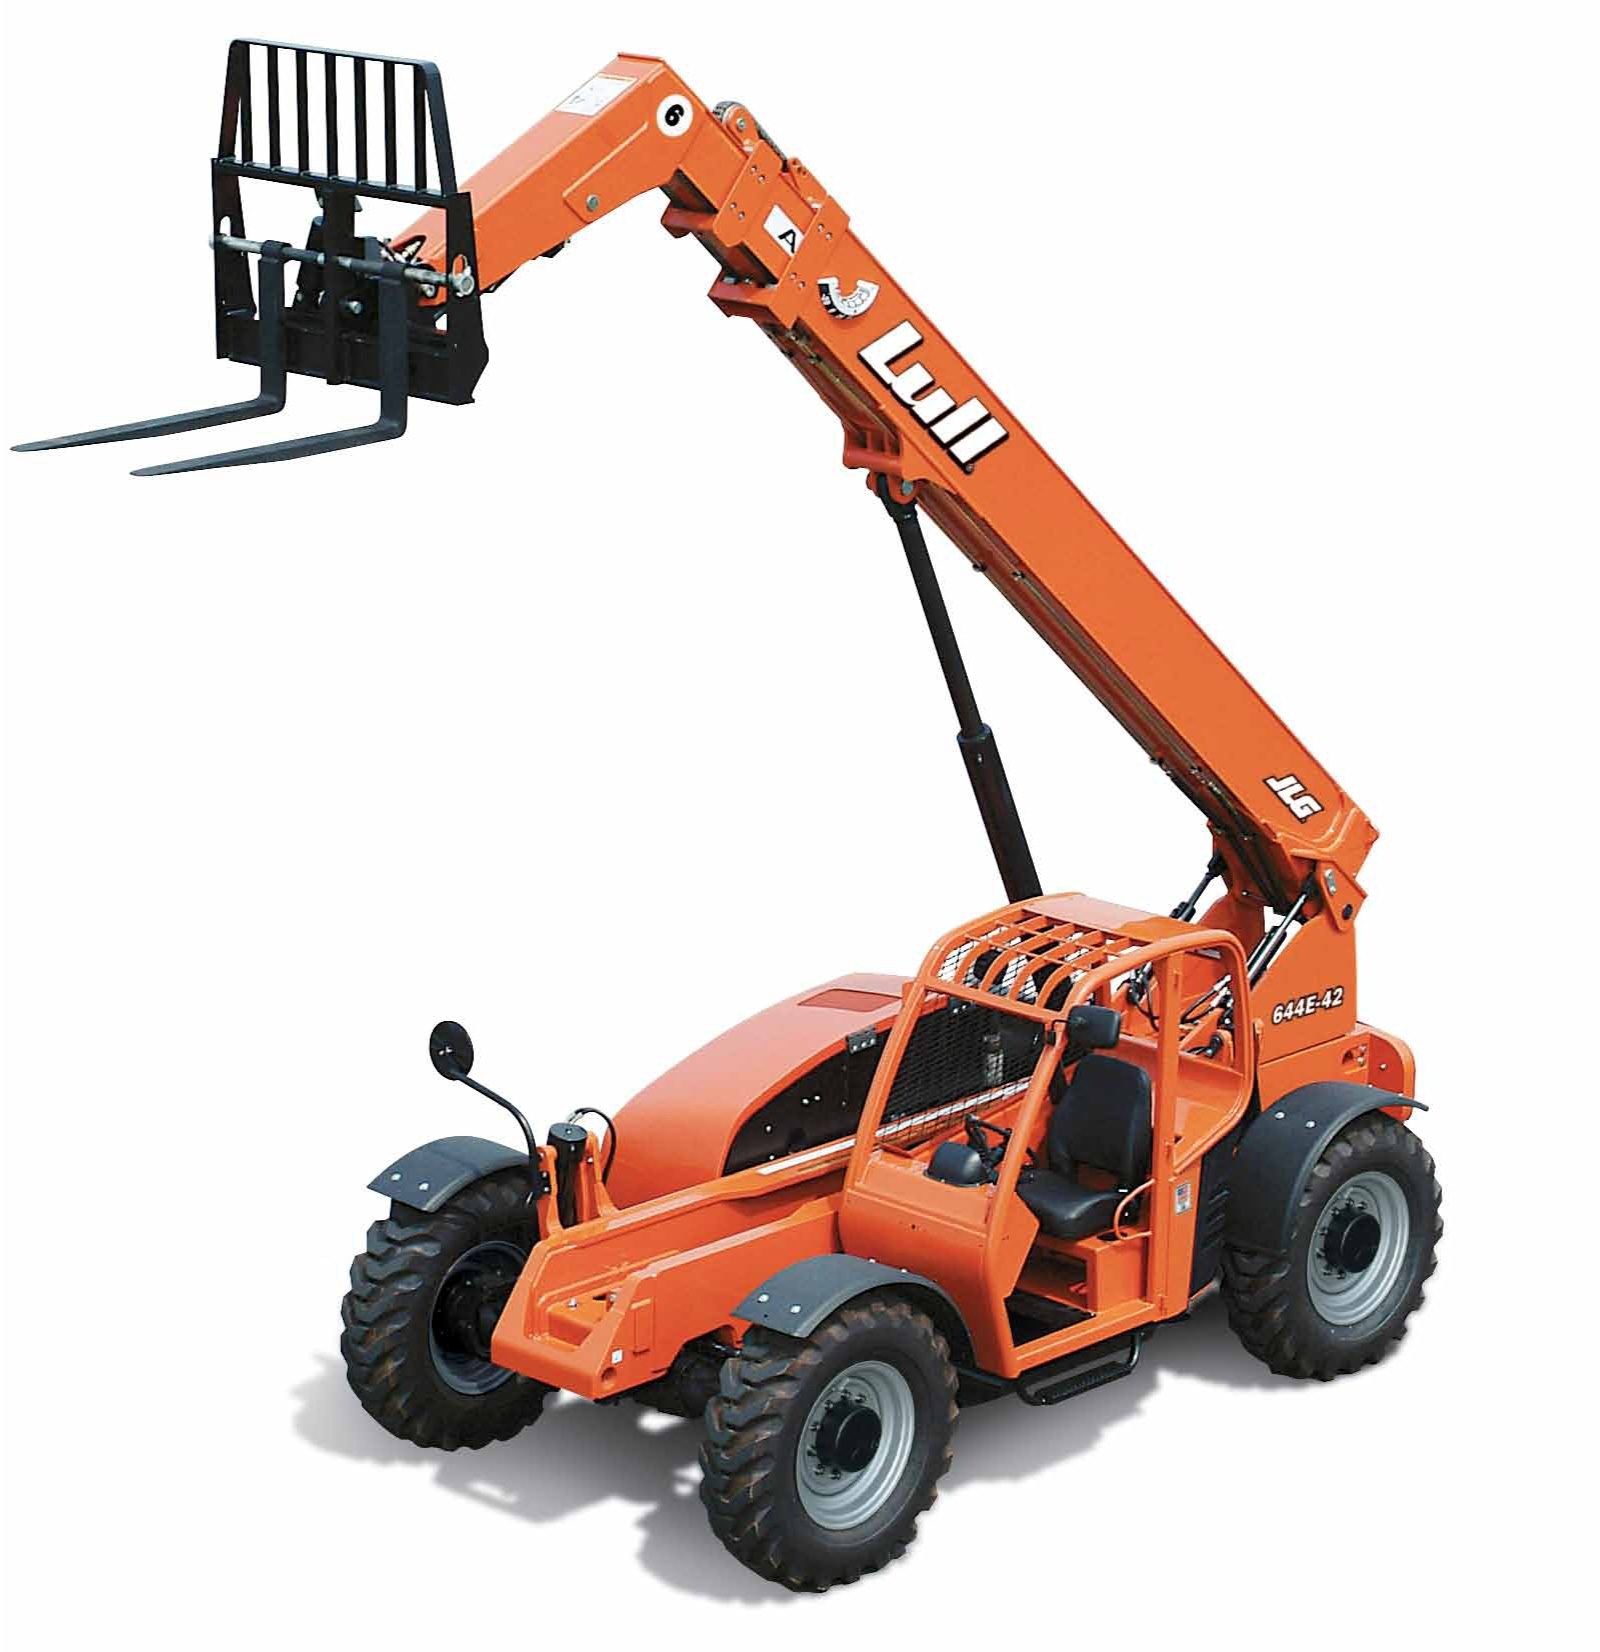 Lull 9442E Telescopic Fork Lift for Rent Sunflower Equipment Rental Topeka Lawrence Blue Springs Kansas